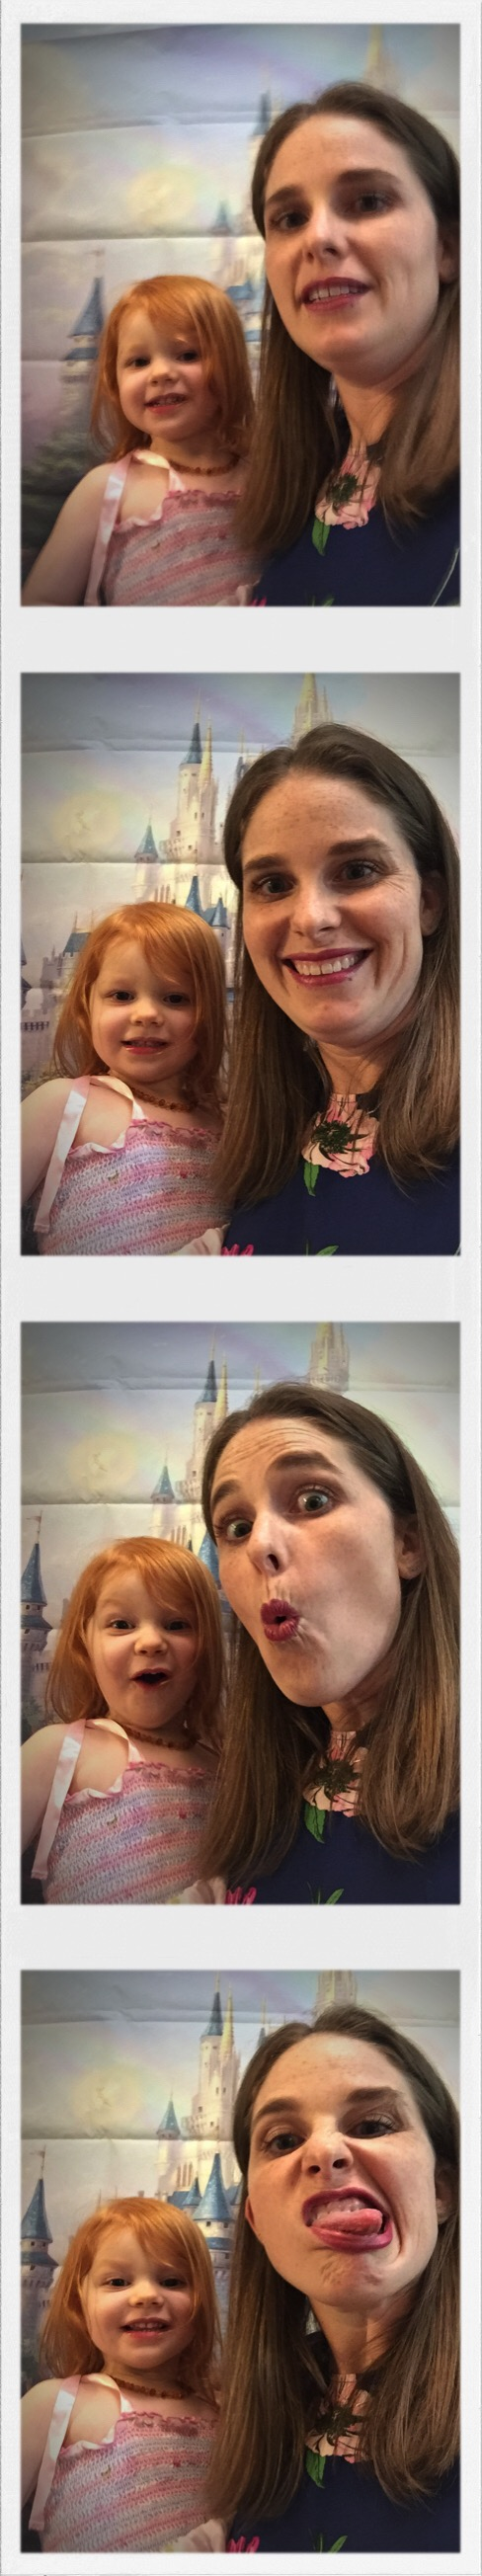 DisneyKids Mommy and Me Monday